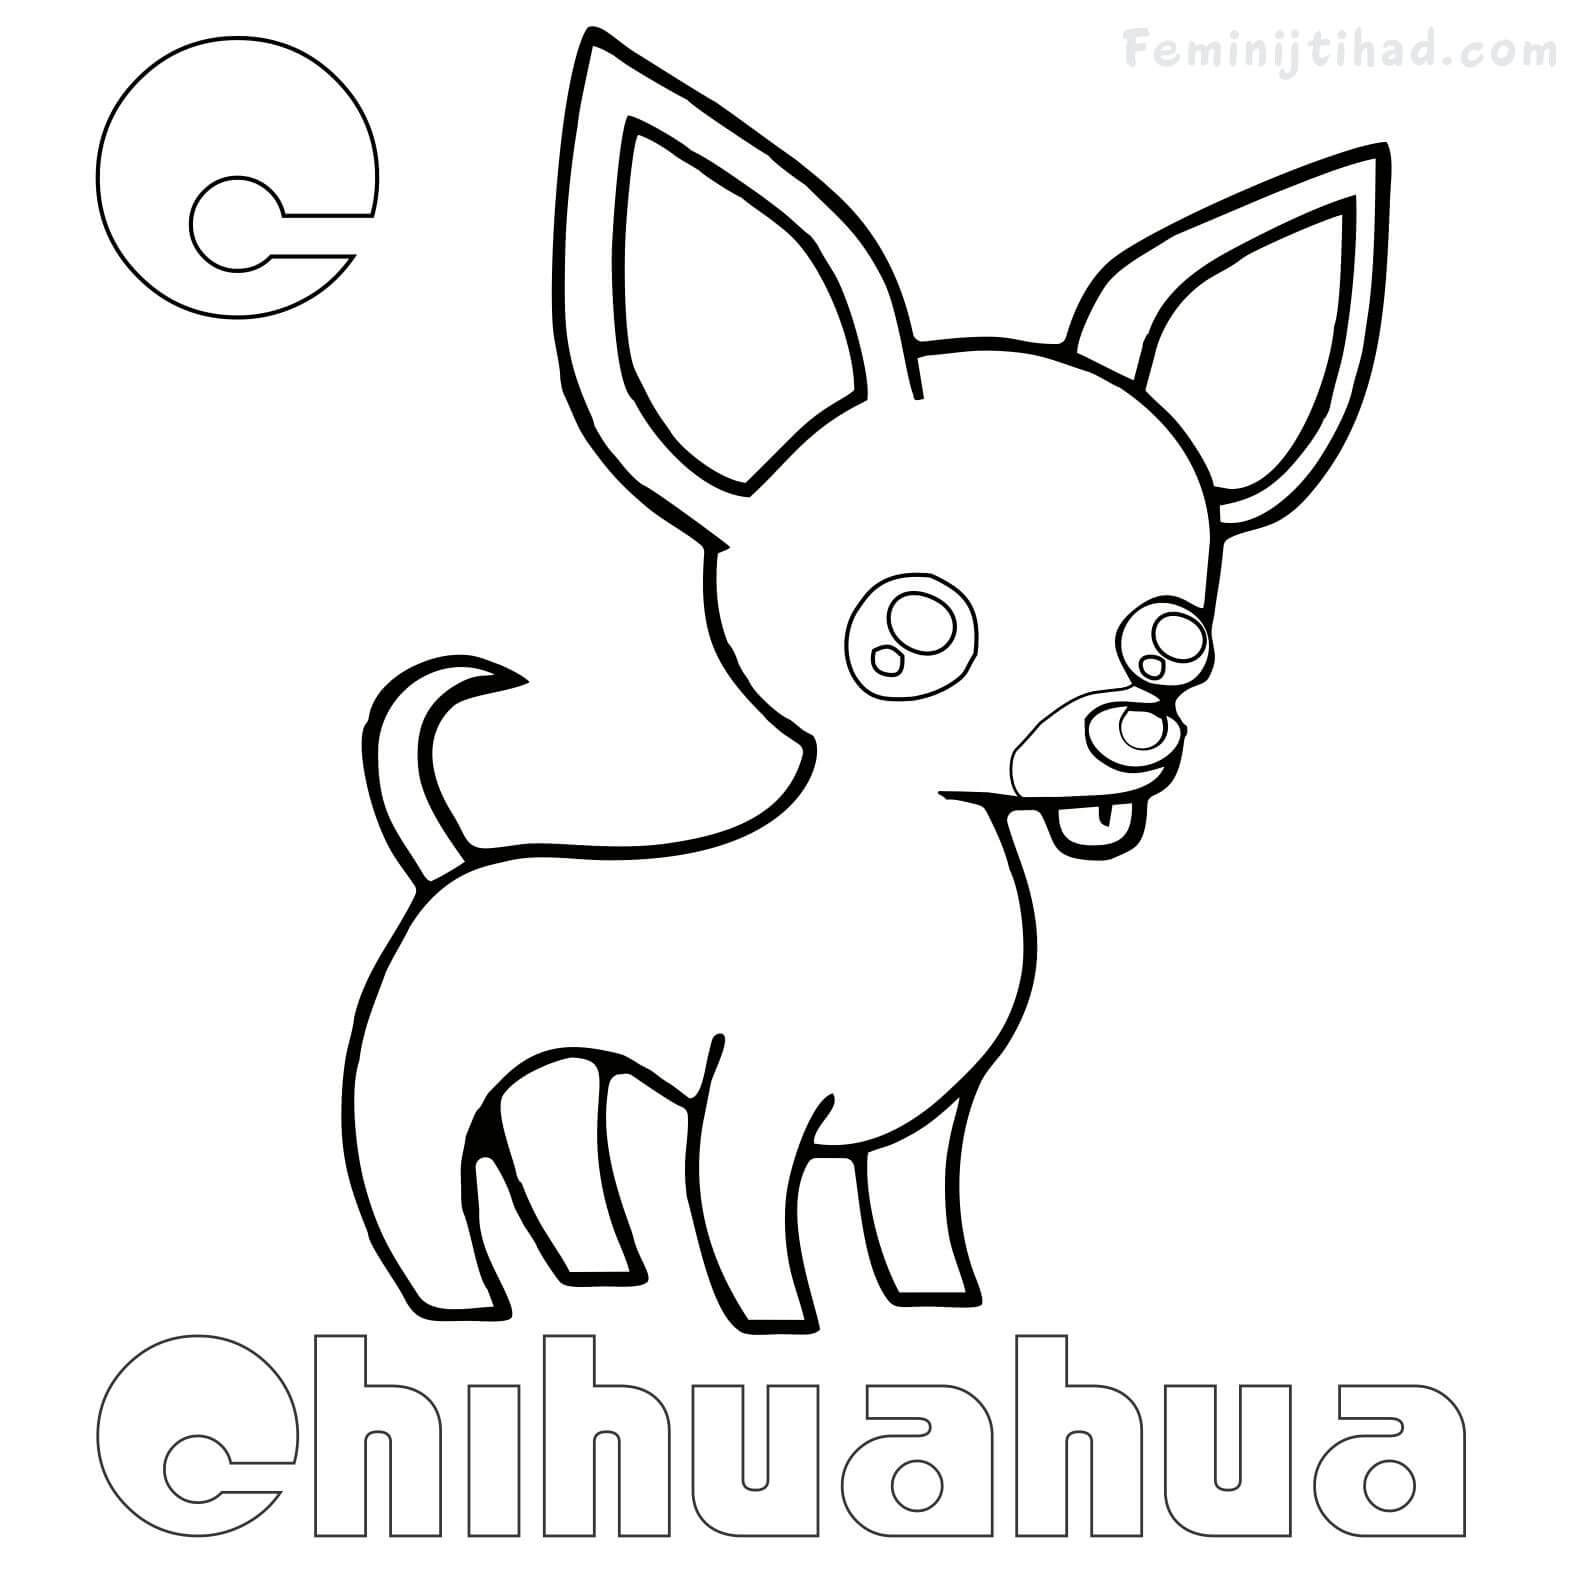 Printable Chihuahua Coloring Pages Free Coloring Sheets Moon Coloring Pages Coloring Pages Puppy Coloring Pages [ 1575 x 1575 Pixel ]